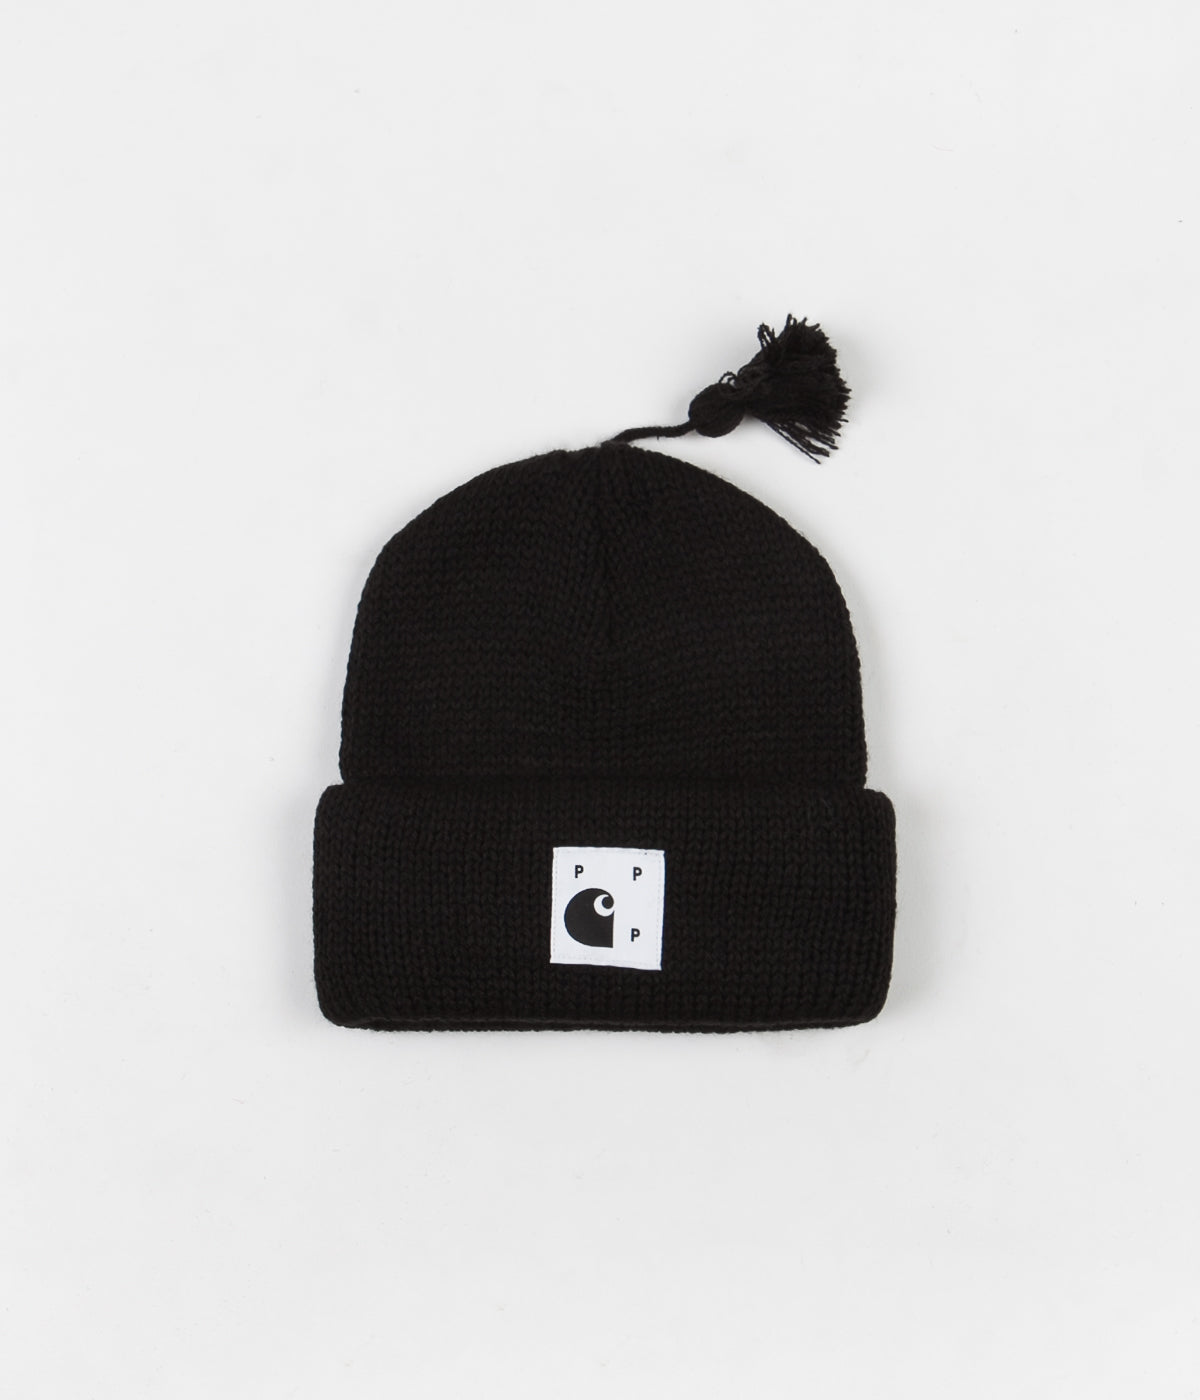 Pop Trading Company x Carhartt Watch Hat - Black